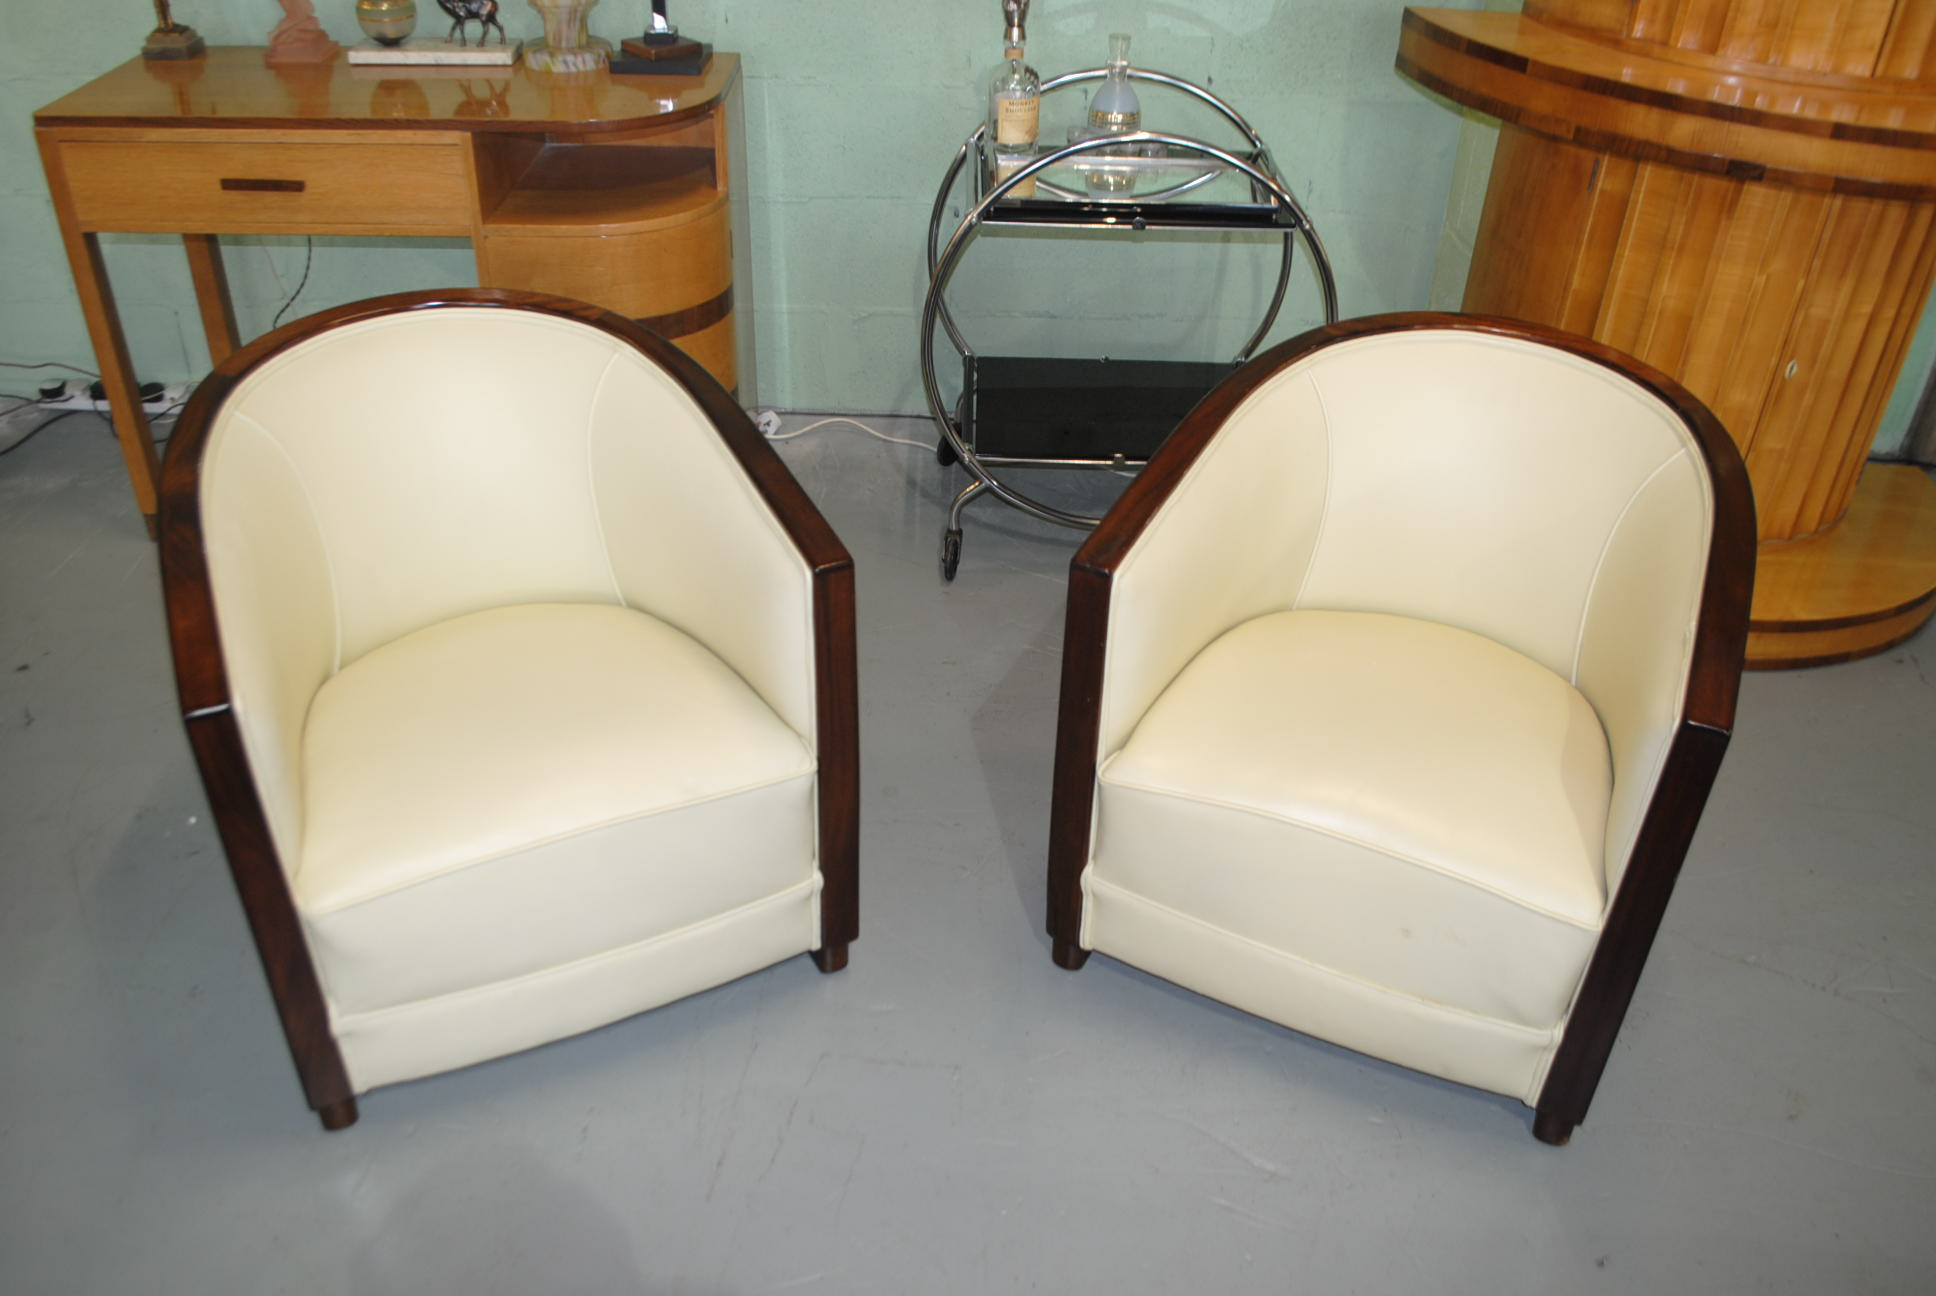 A Pair Of Original French Art Deco Club Chairs In Cream Leather And With  Walnut Backs.